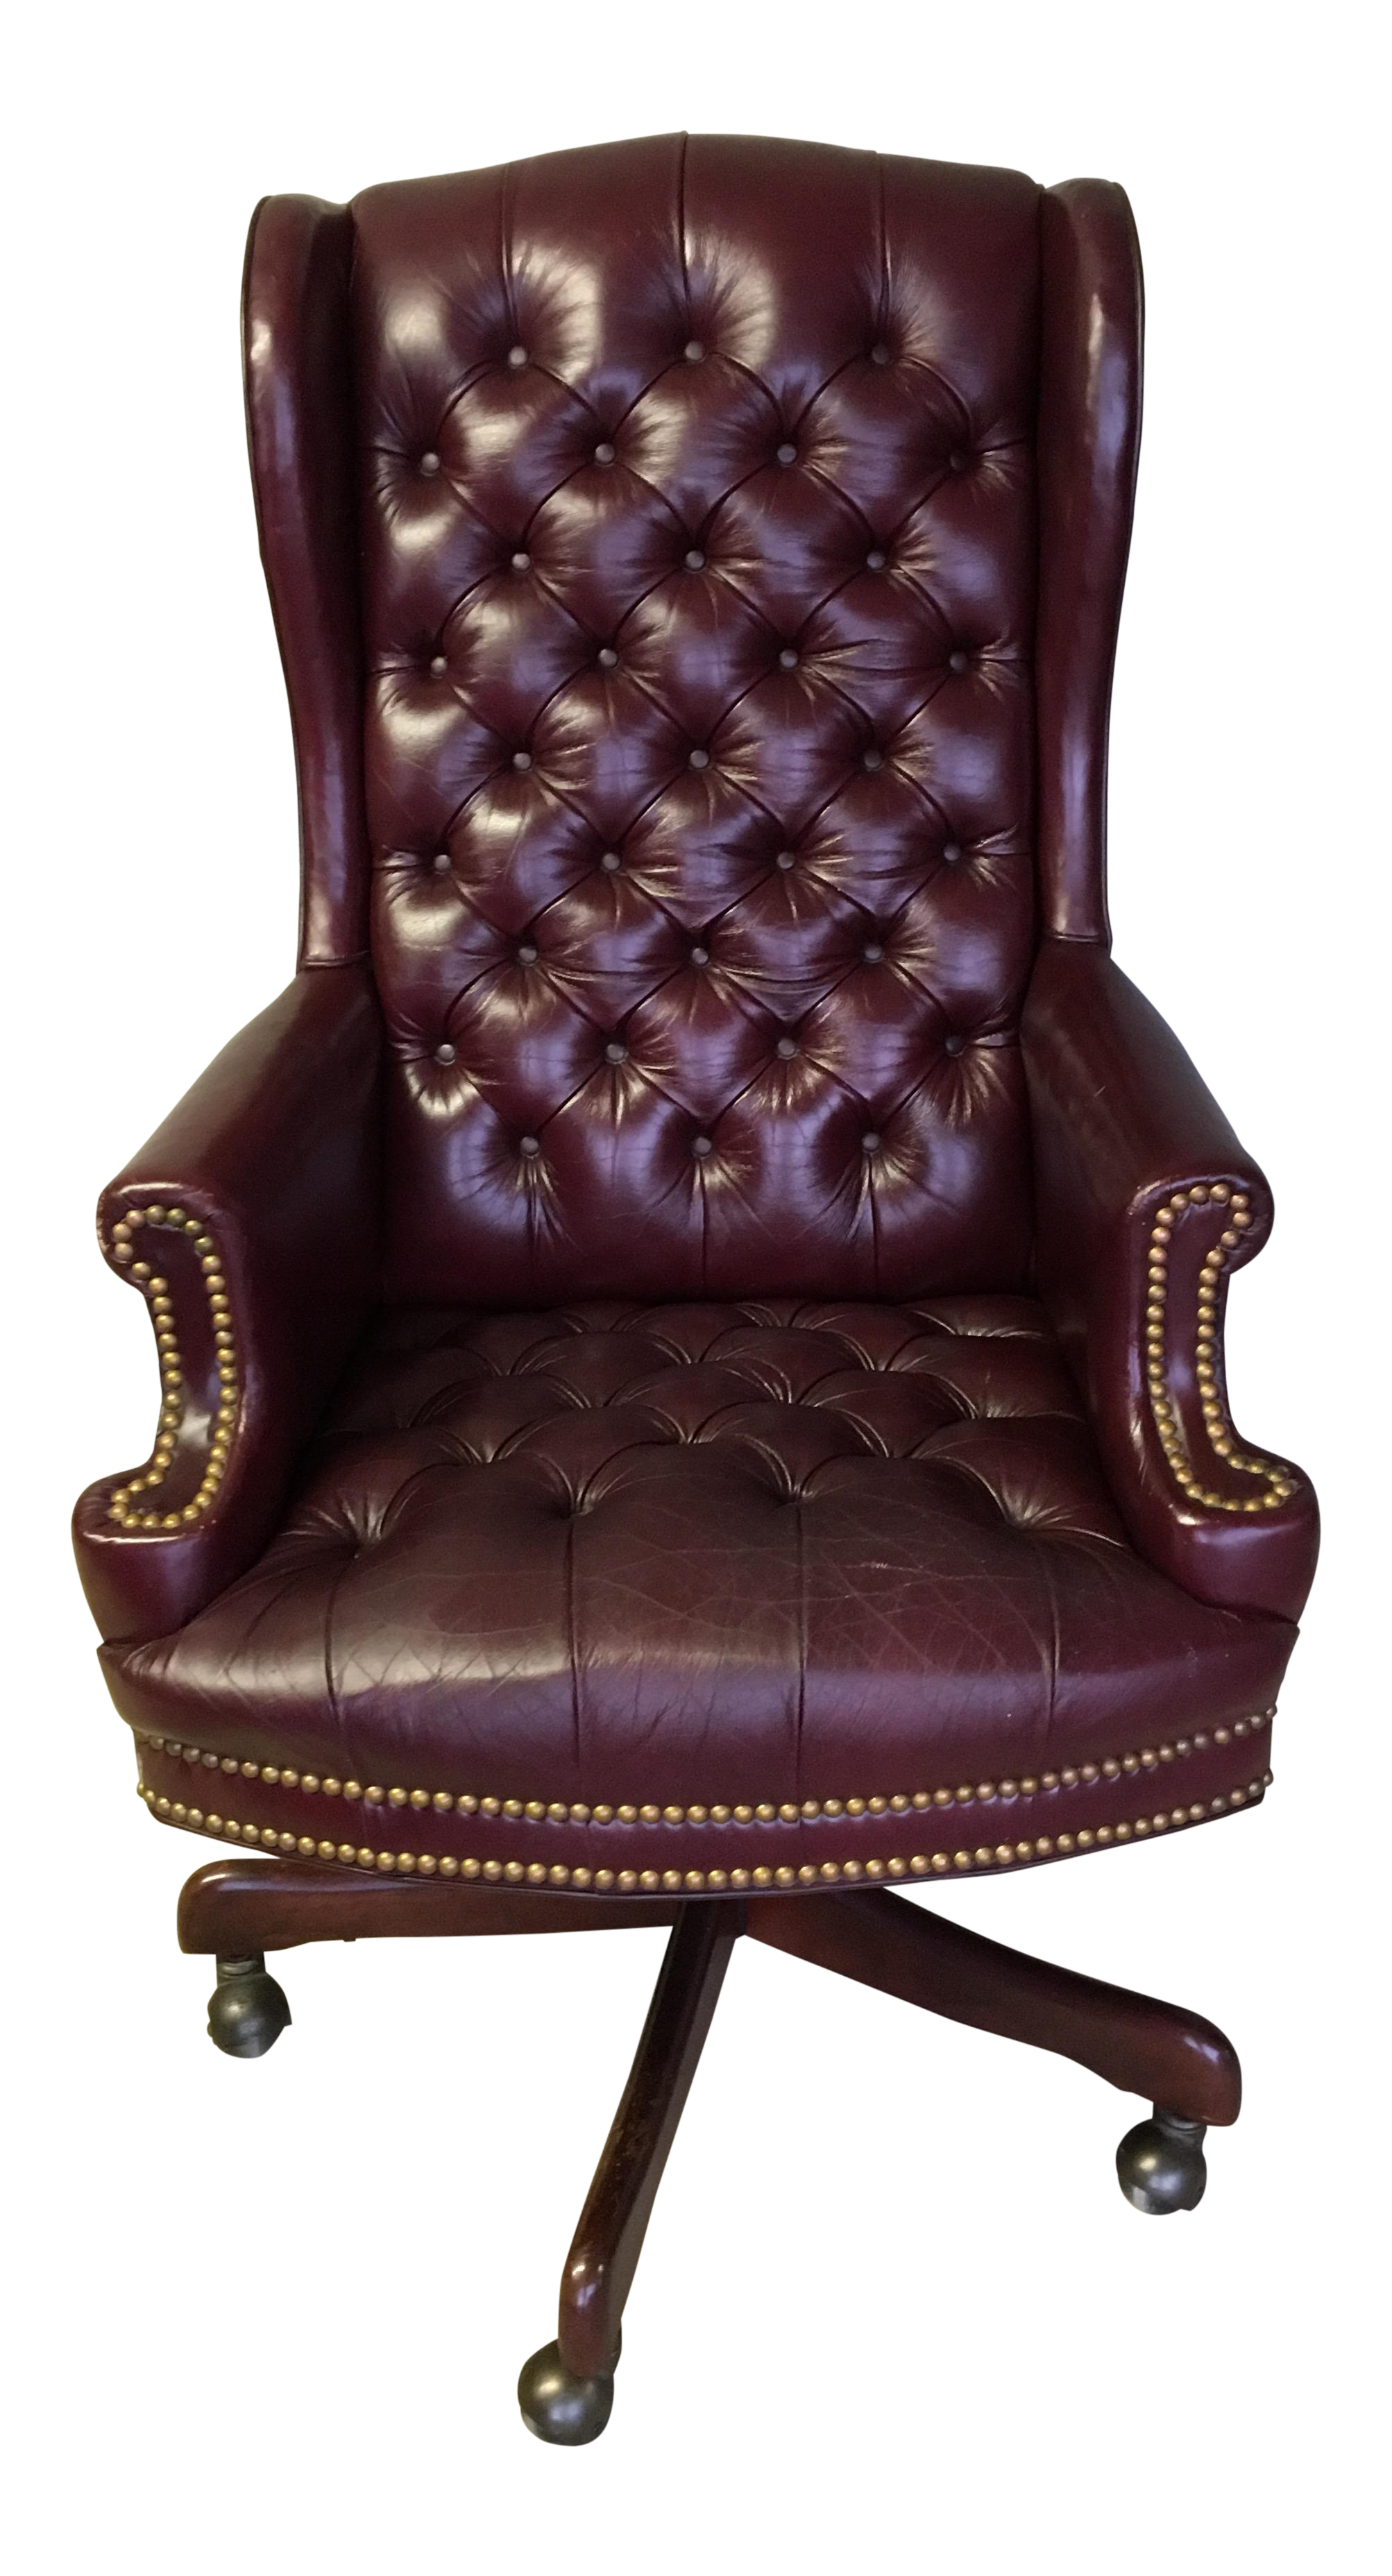 High Quality Whitehall Leather Oxblood Tufted Wing Back Chair